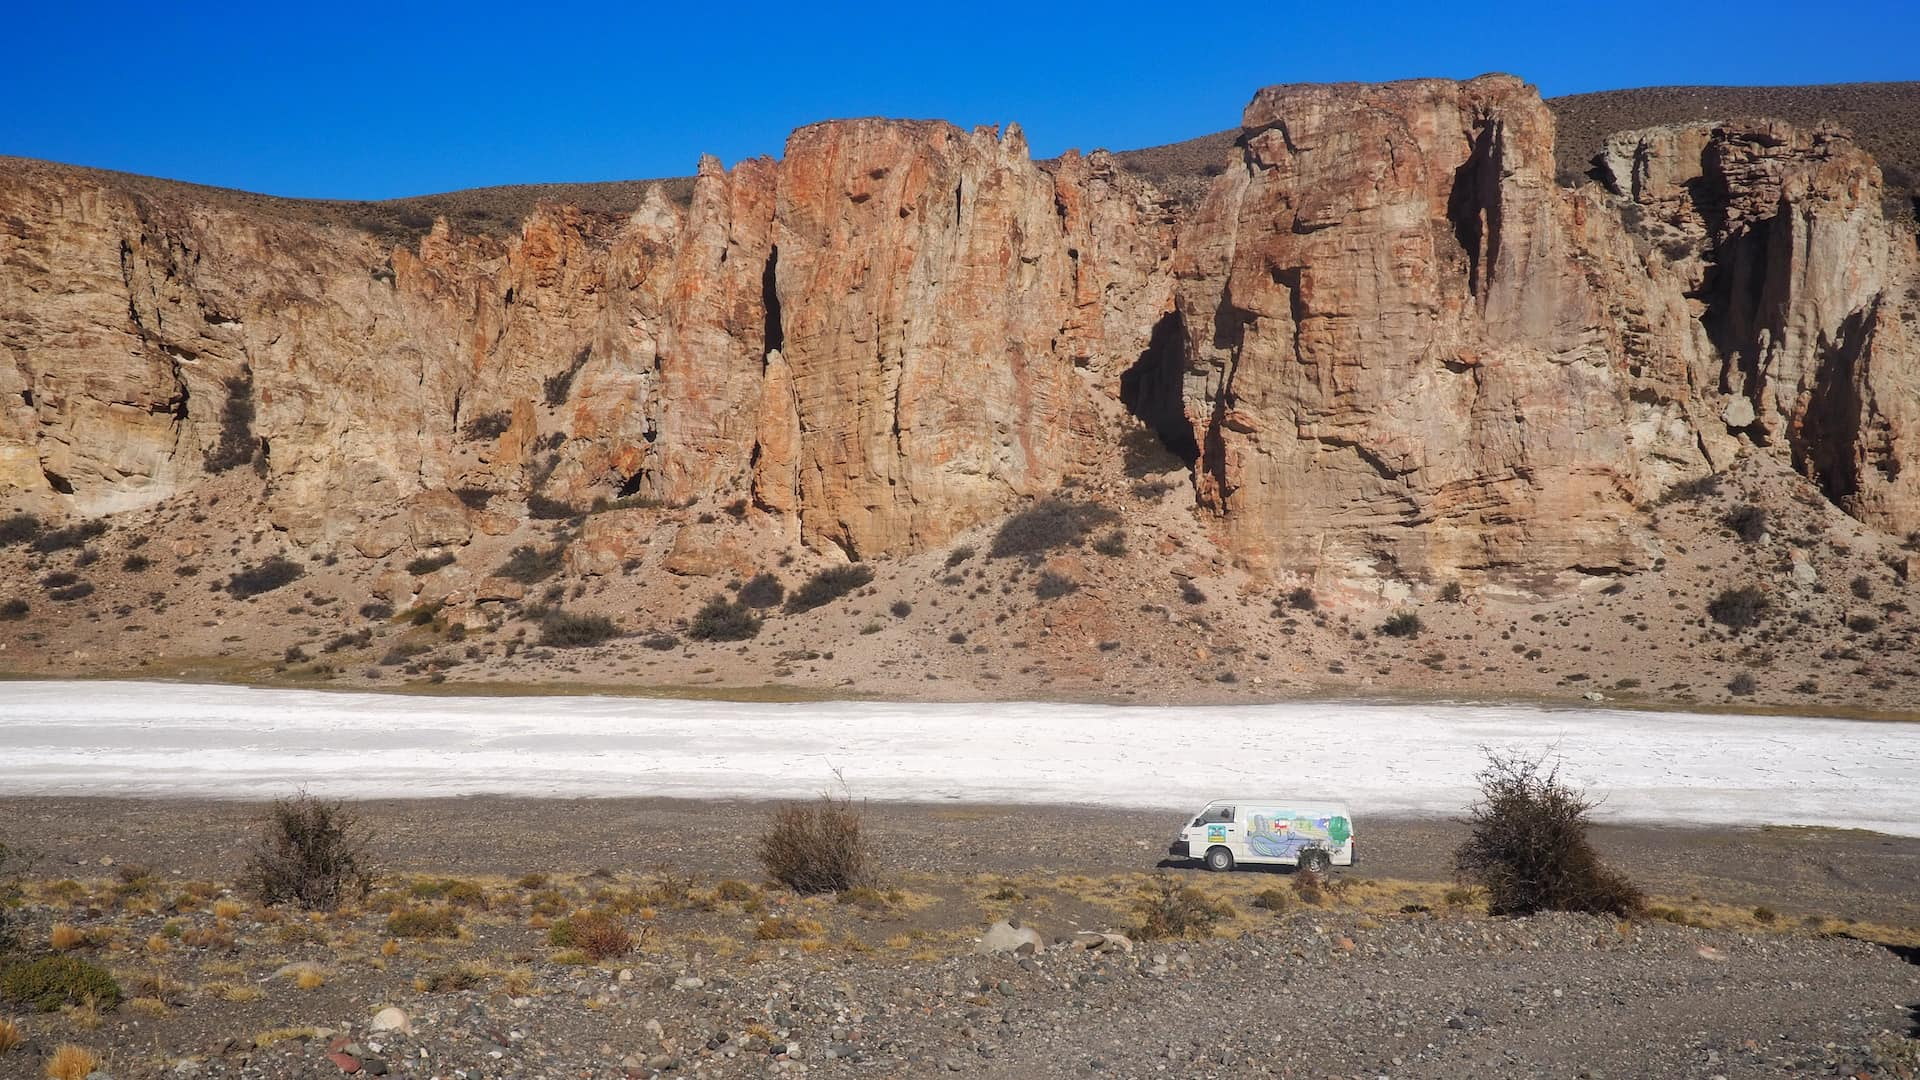 Camper van parked at the bottom of a canyon